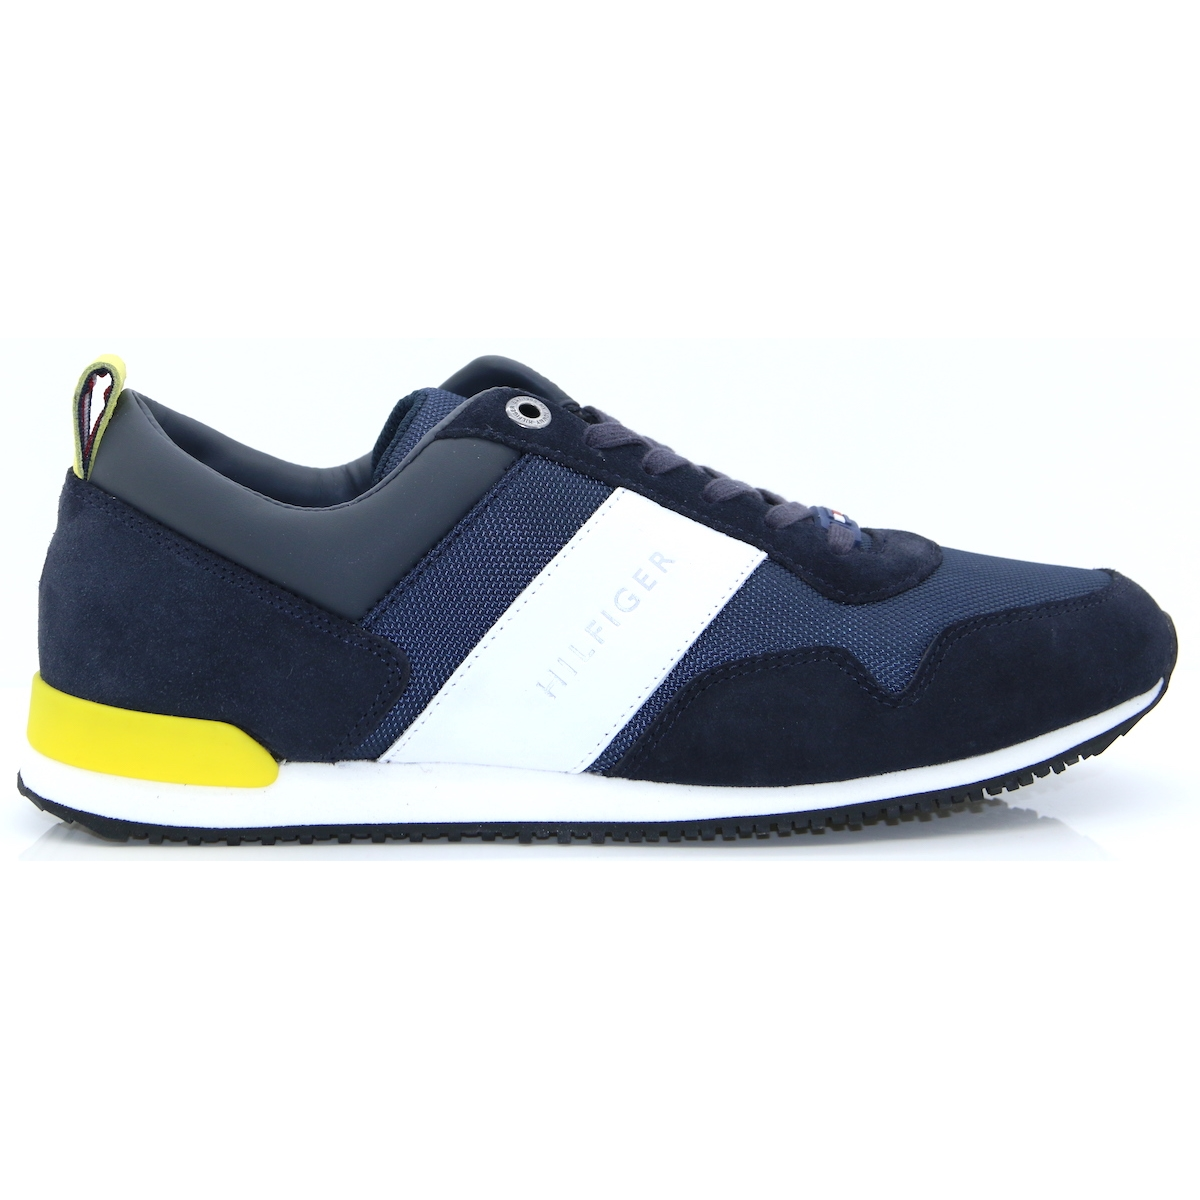 665766f5c77c Iconic Material Mix Runner - Tommy Hilfiger NAVY AND YELLOW TRAINERS. Tap  to expand